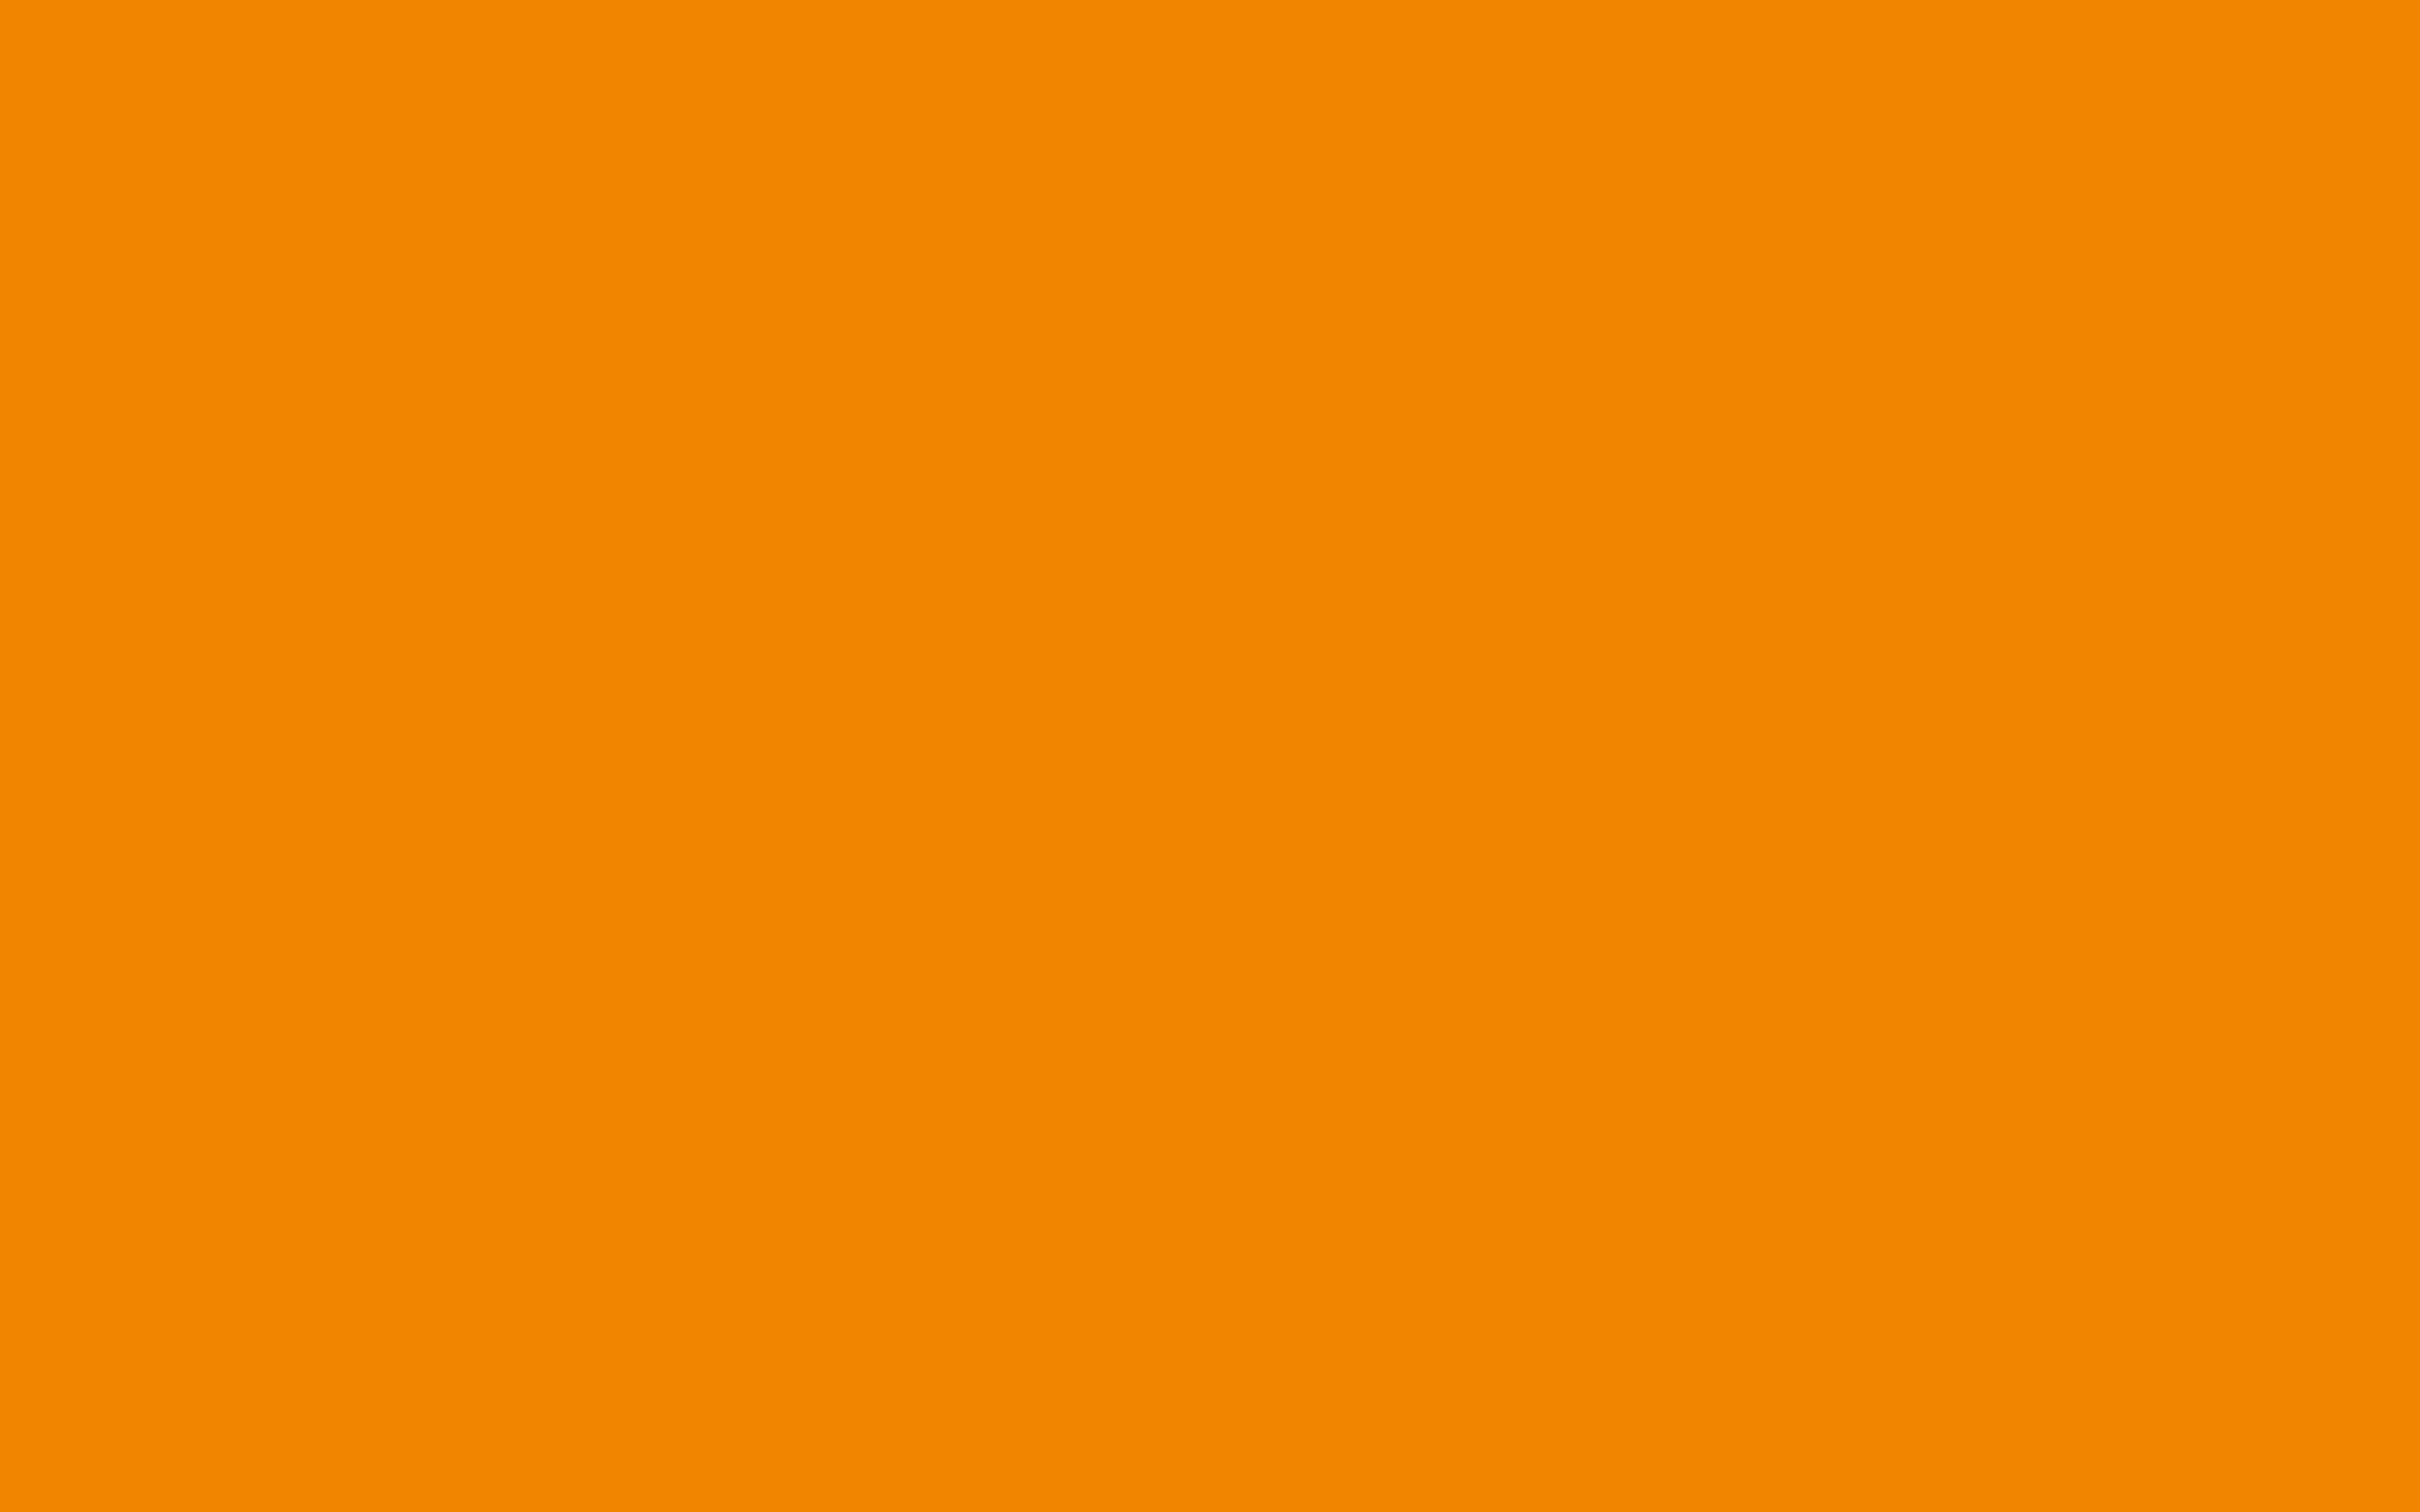 2560x1600 Tangerine Solid Color Background